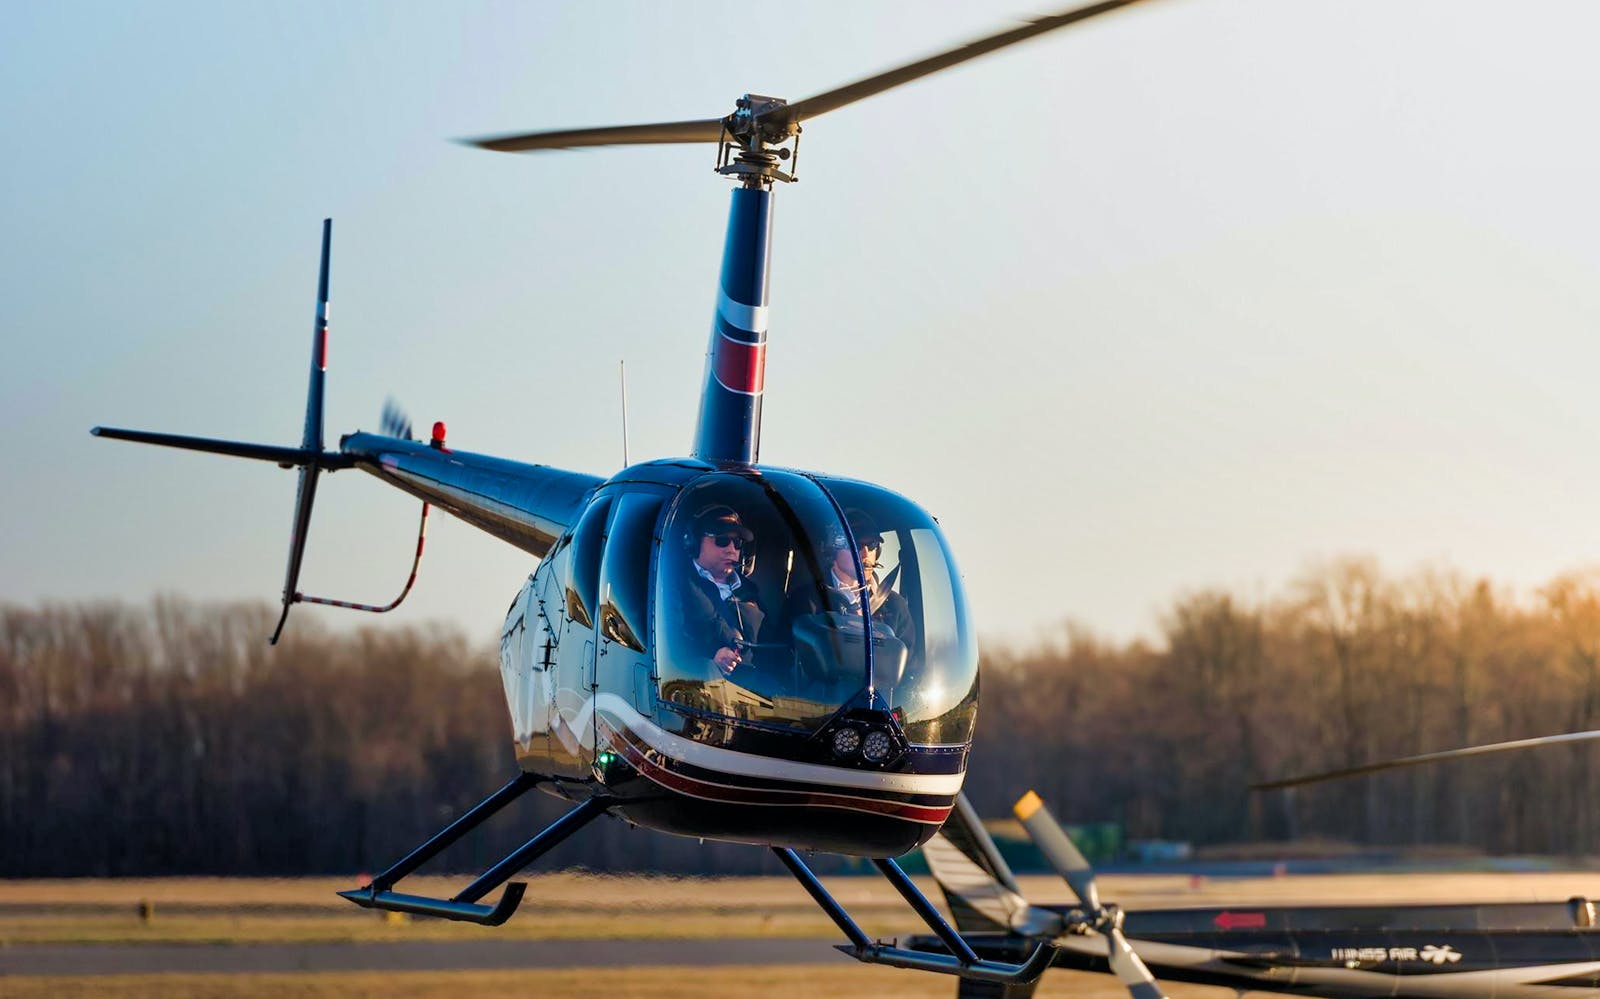 Couple's Private 45 Minute Helicopter tour - Including Heliport Fees